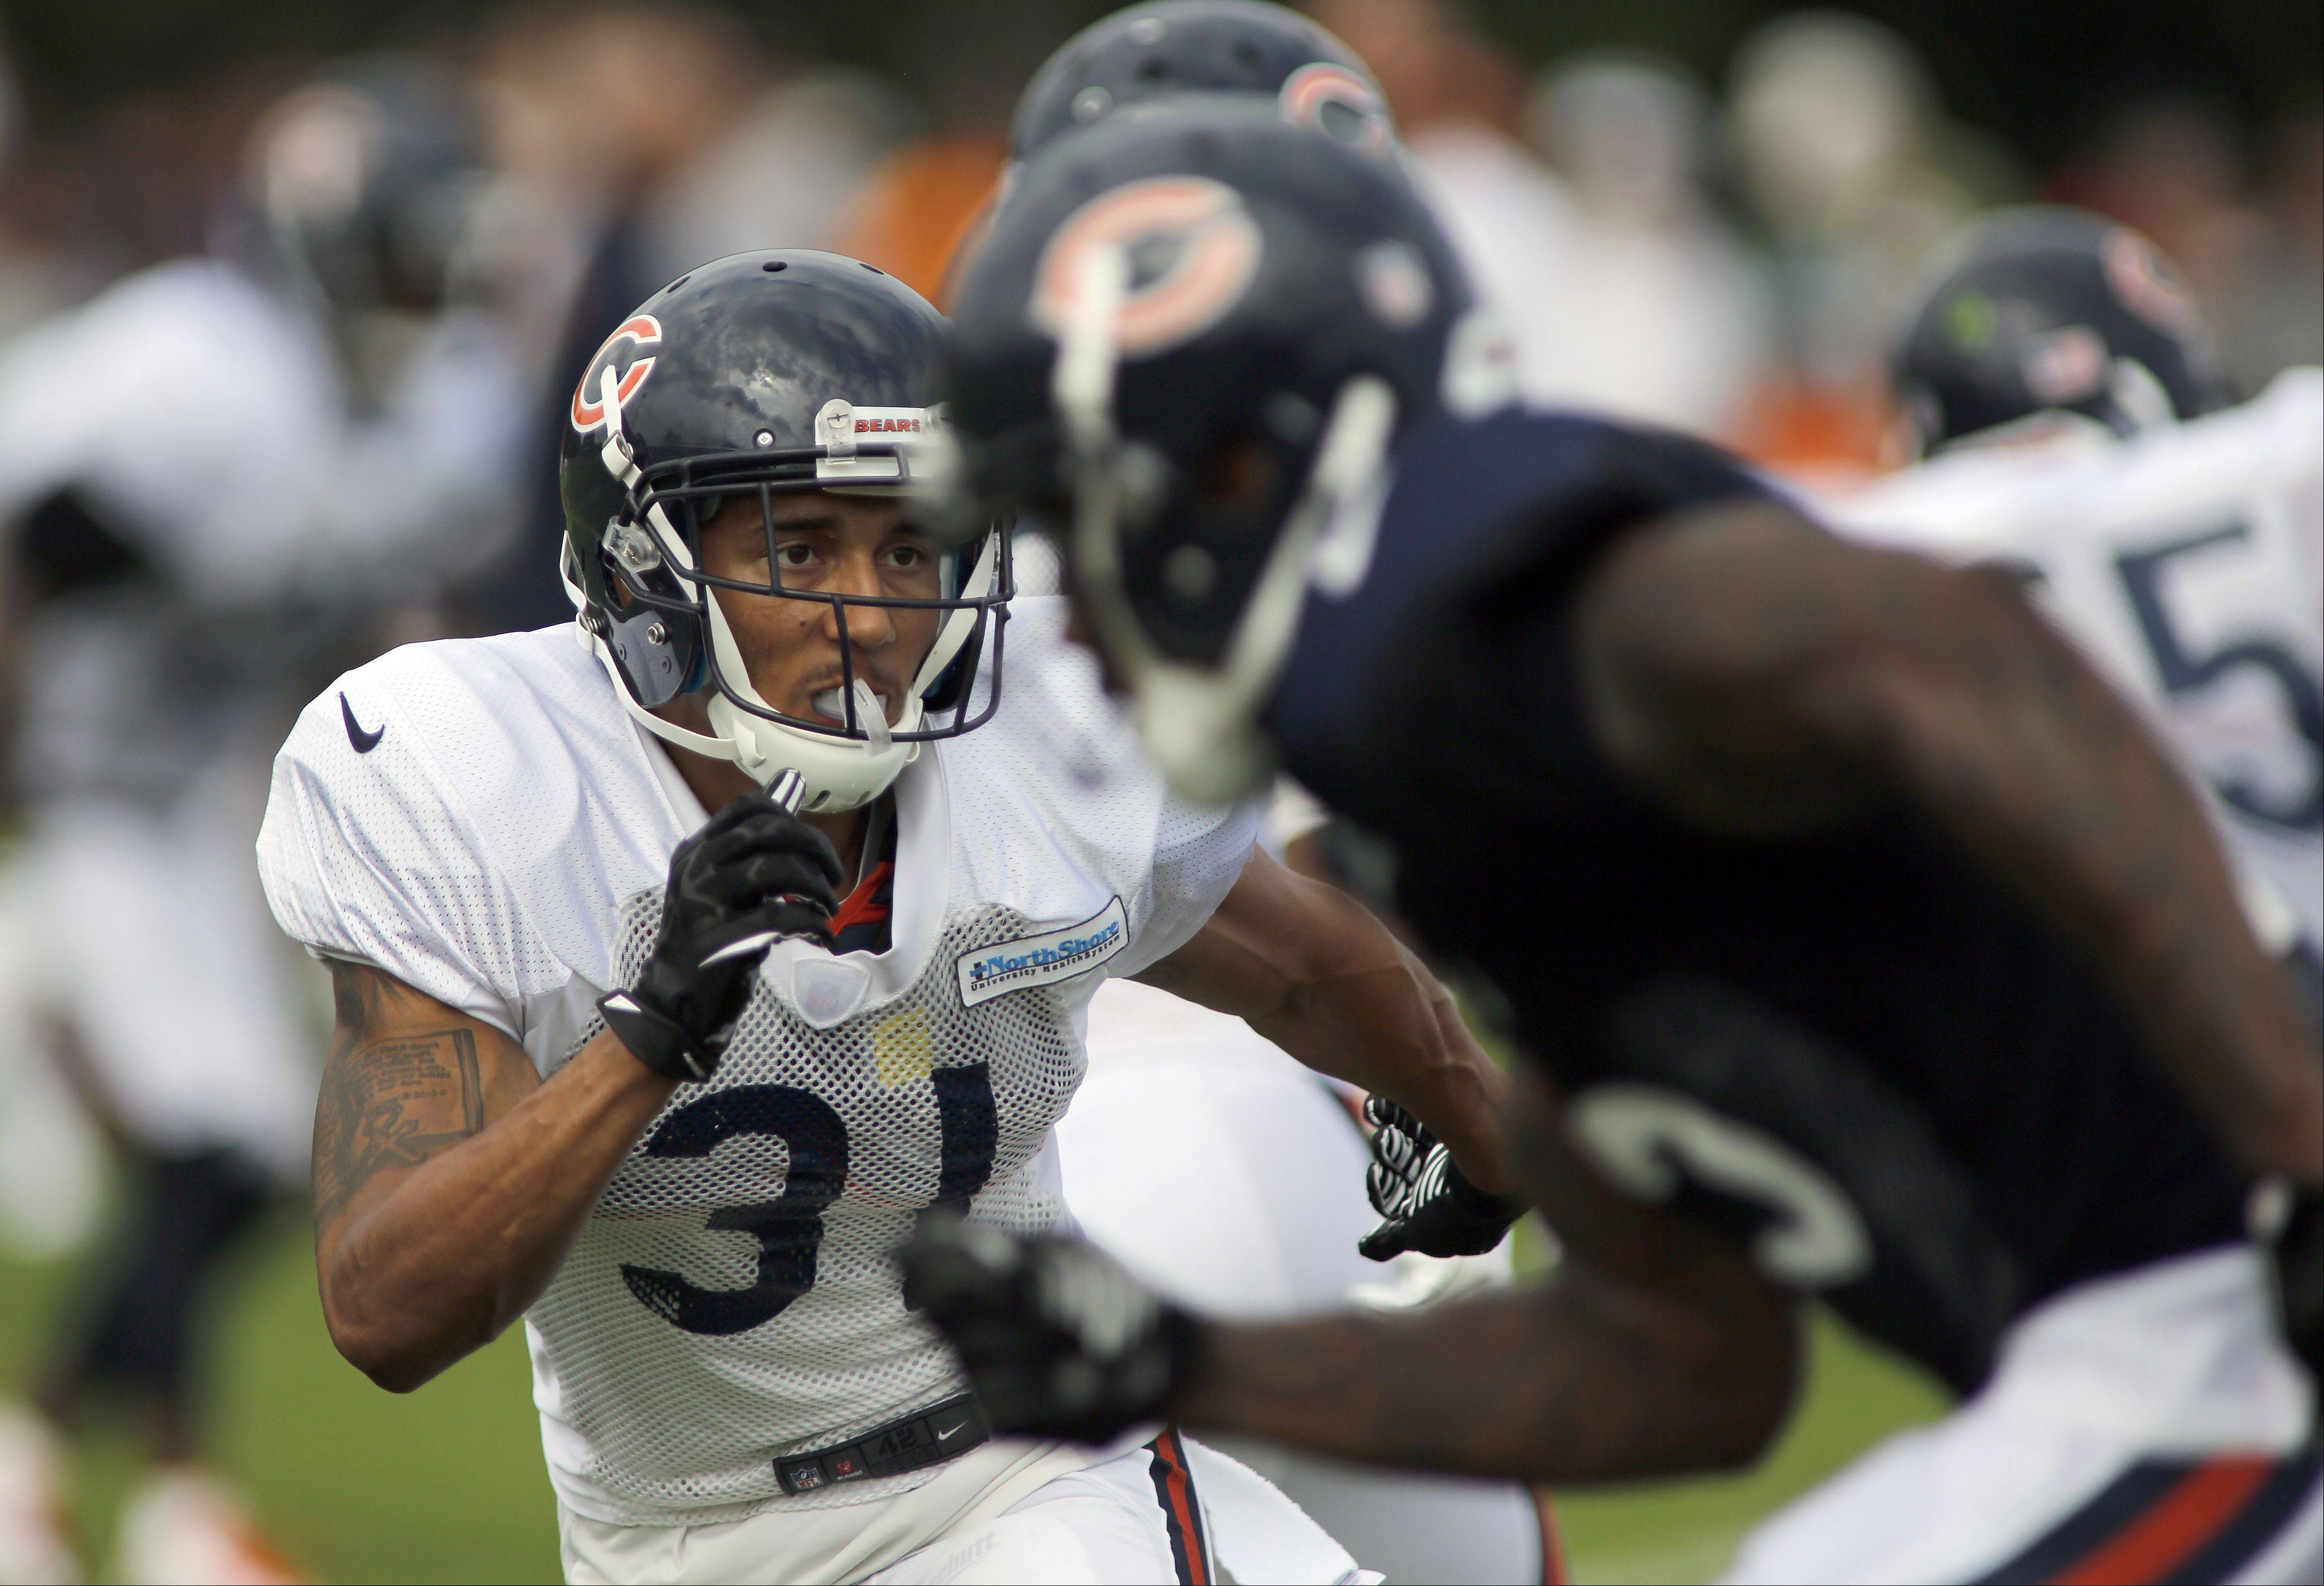 Bears cornerback Isaiah Frey will get the opportunity to replace Kelvin Hayden.